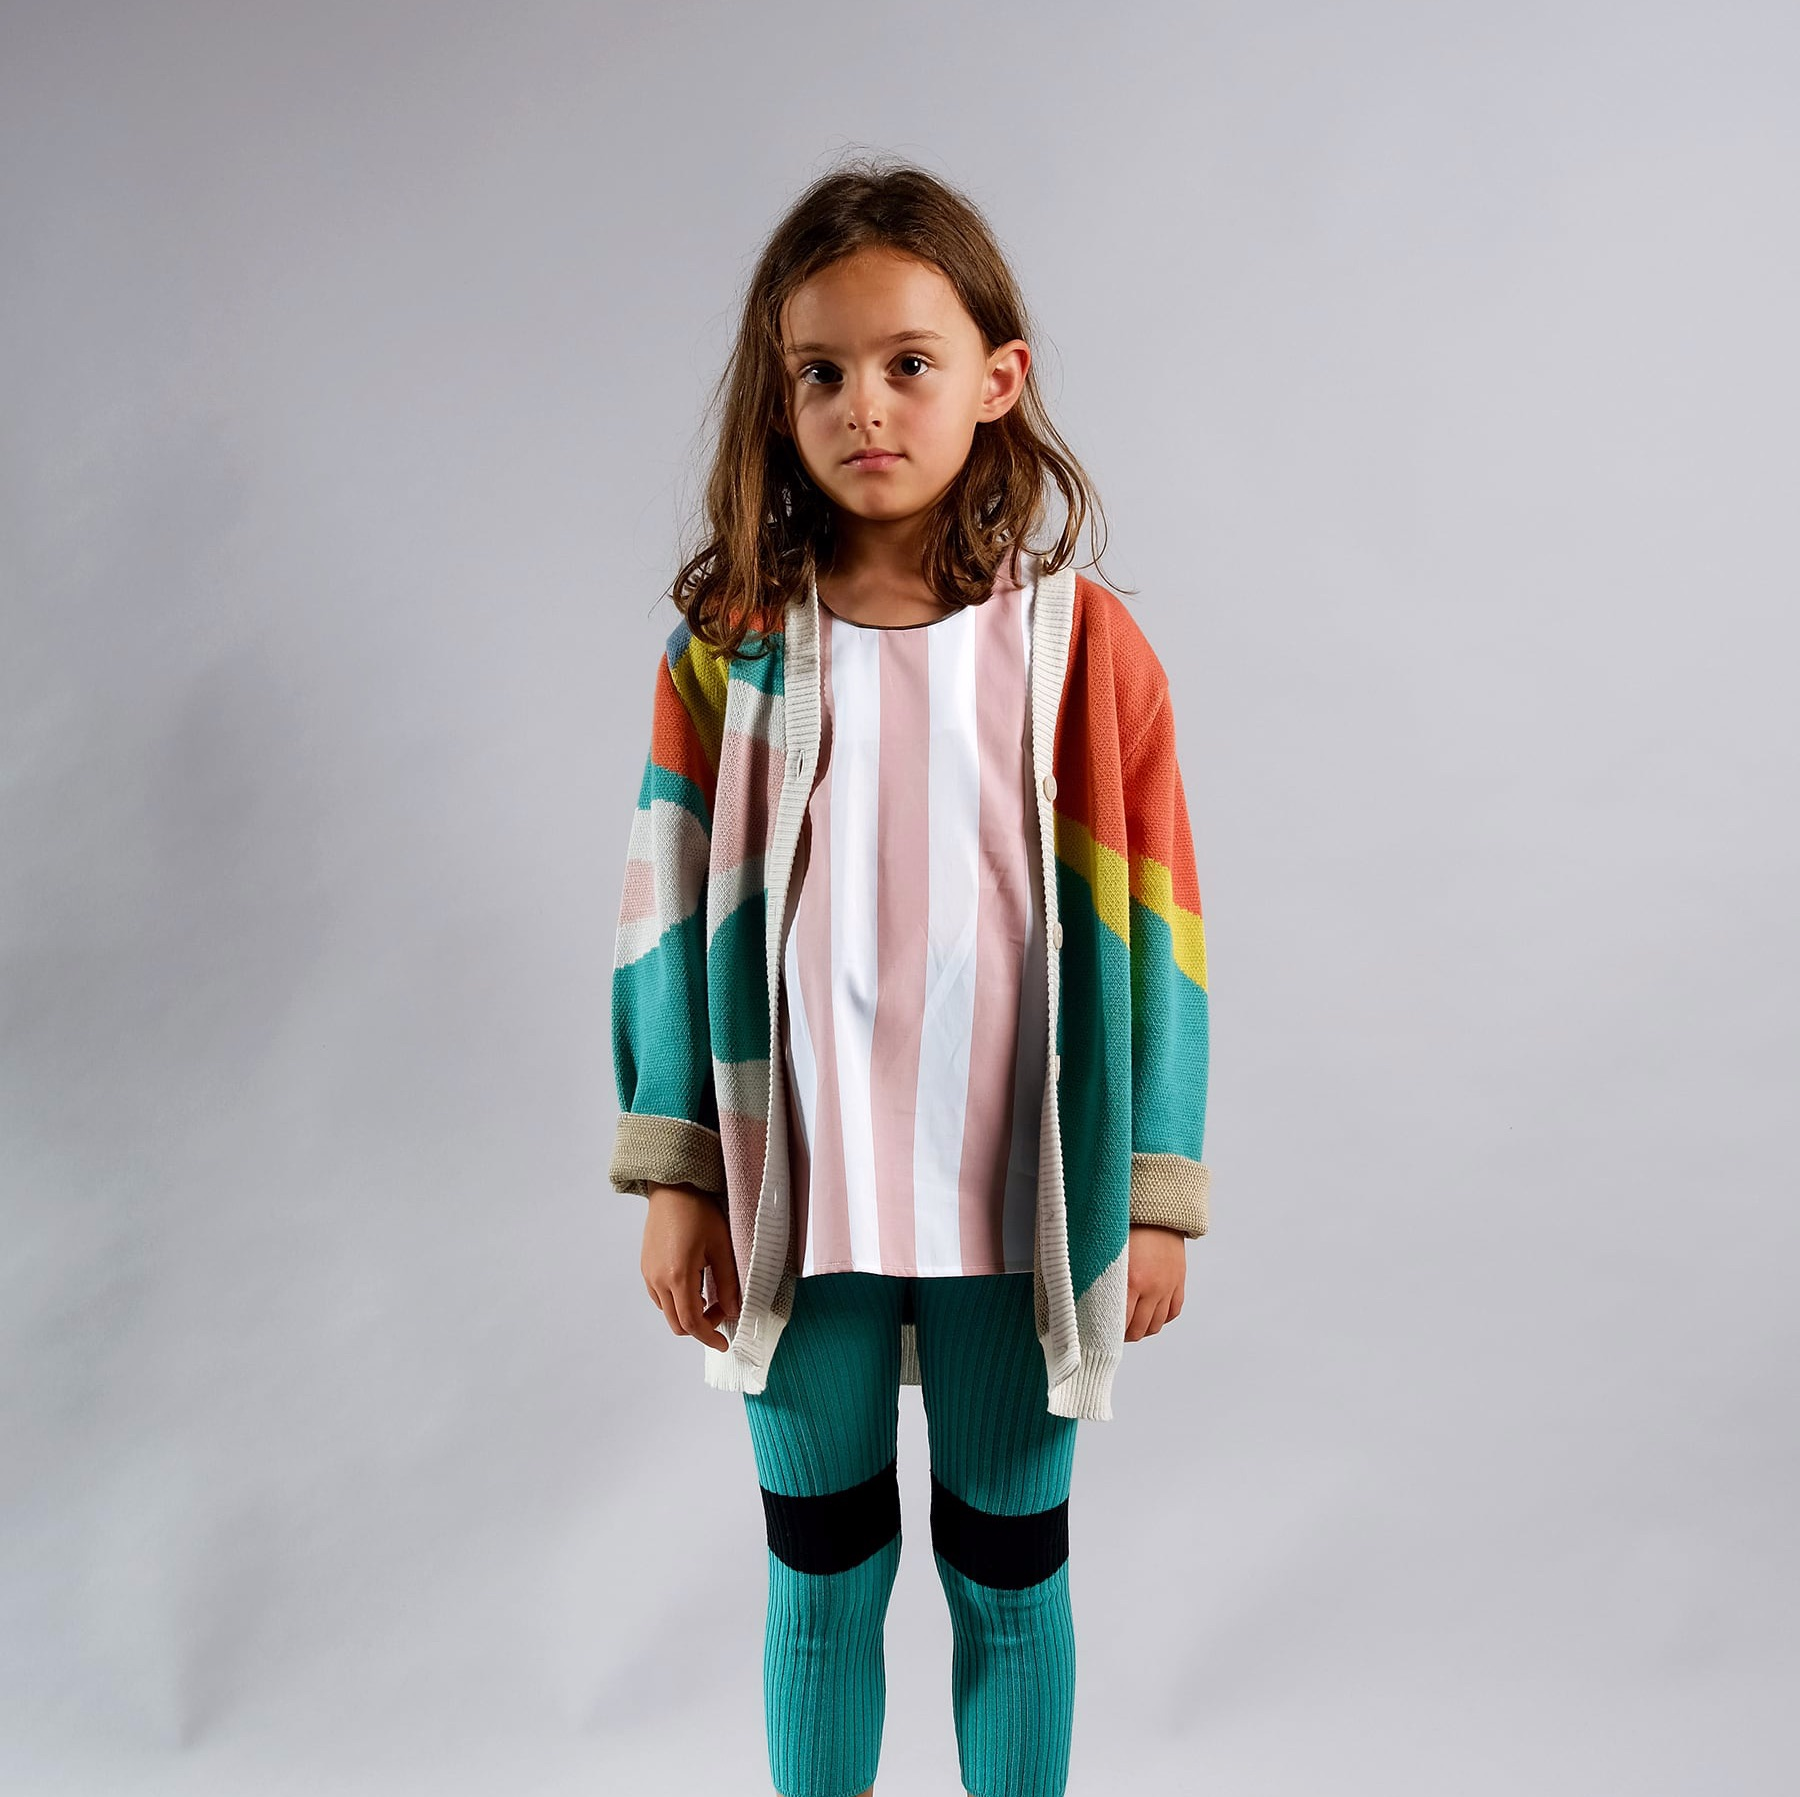 wolf & rita kids look book